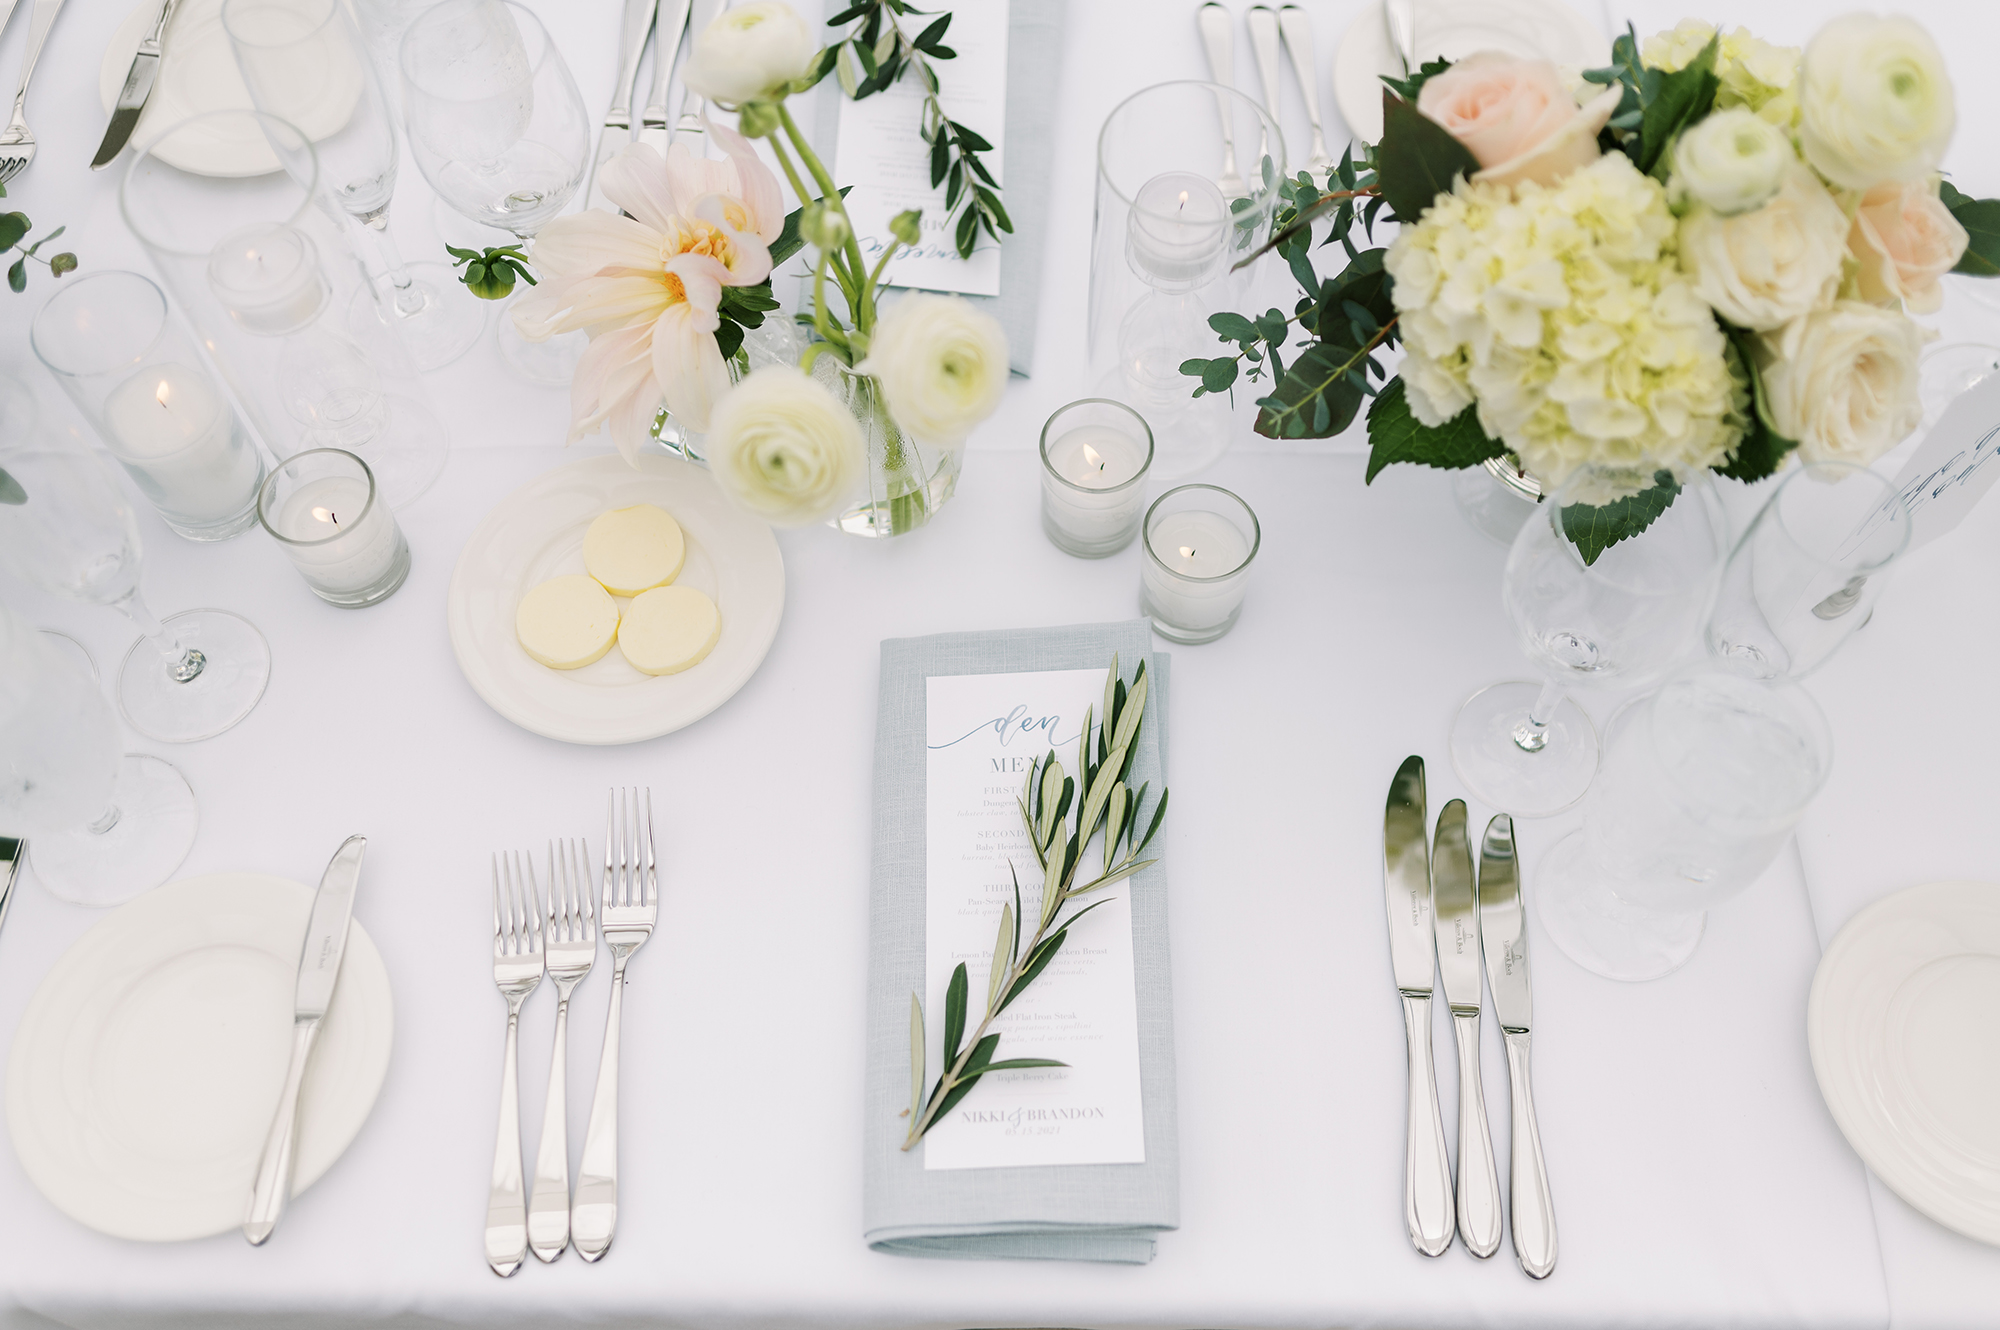 Sam Allen Creates Personalized Watercolor Menu with Guest Name 2